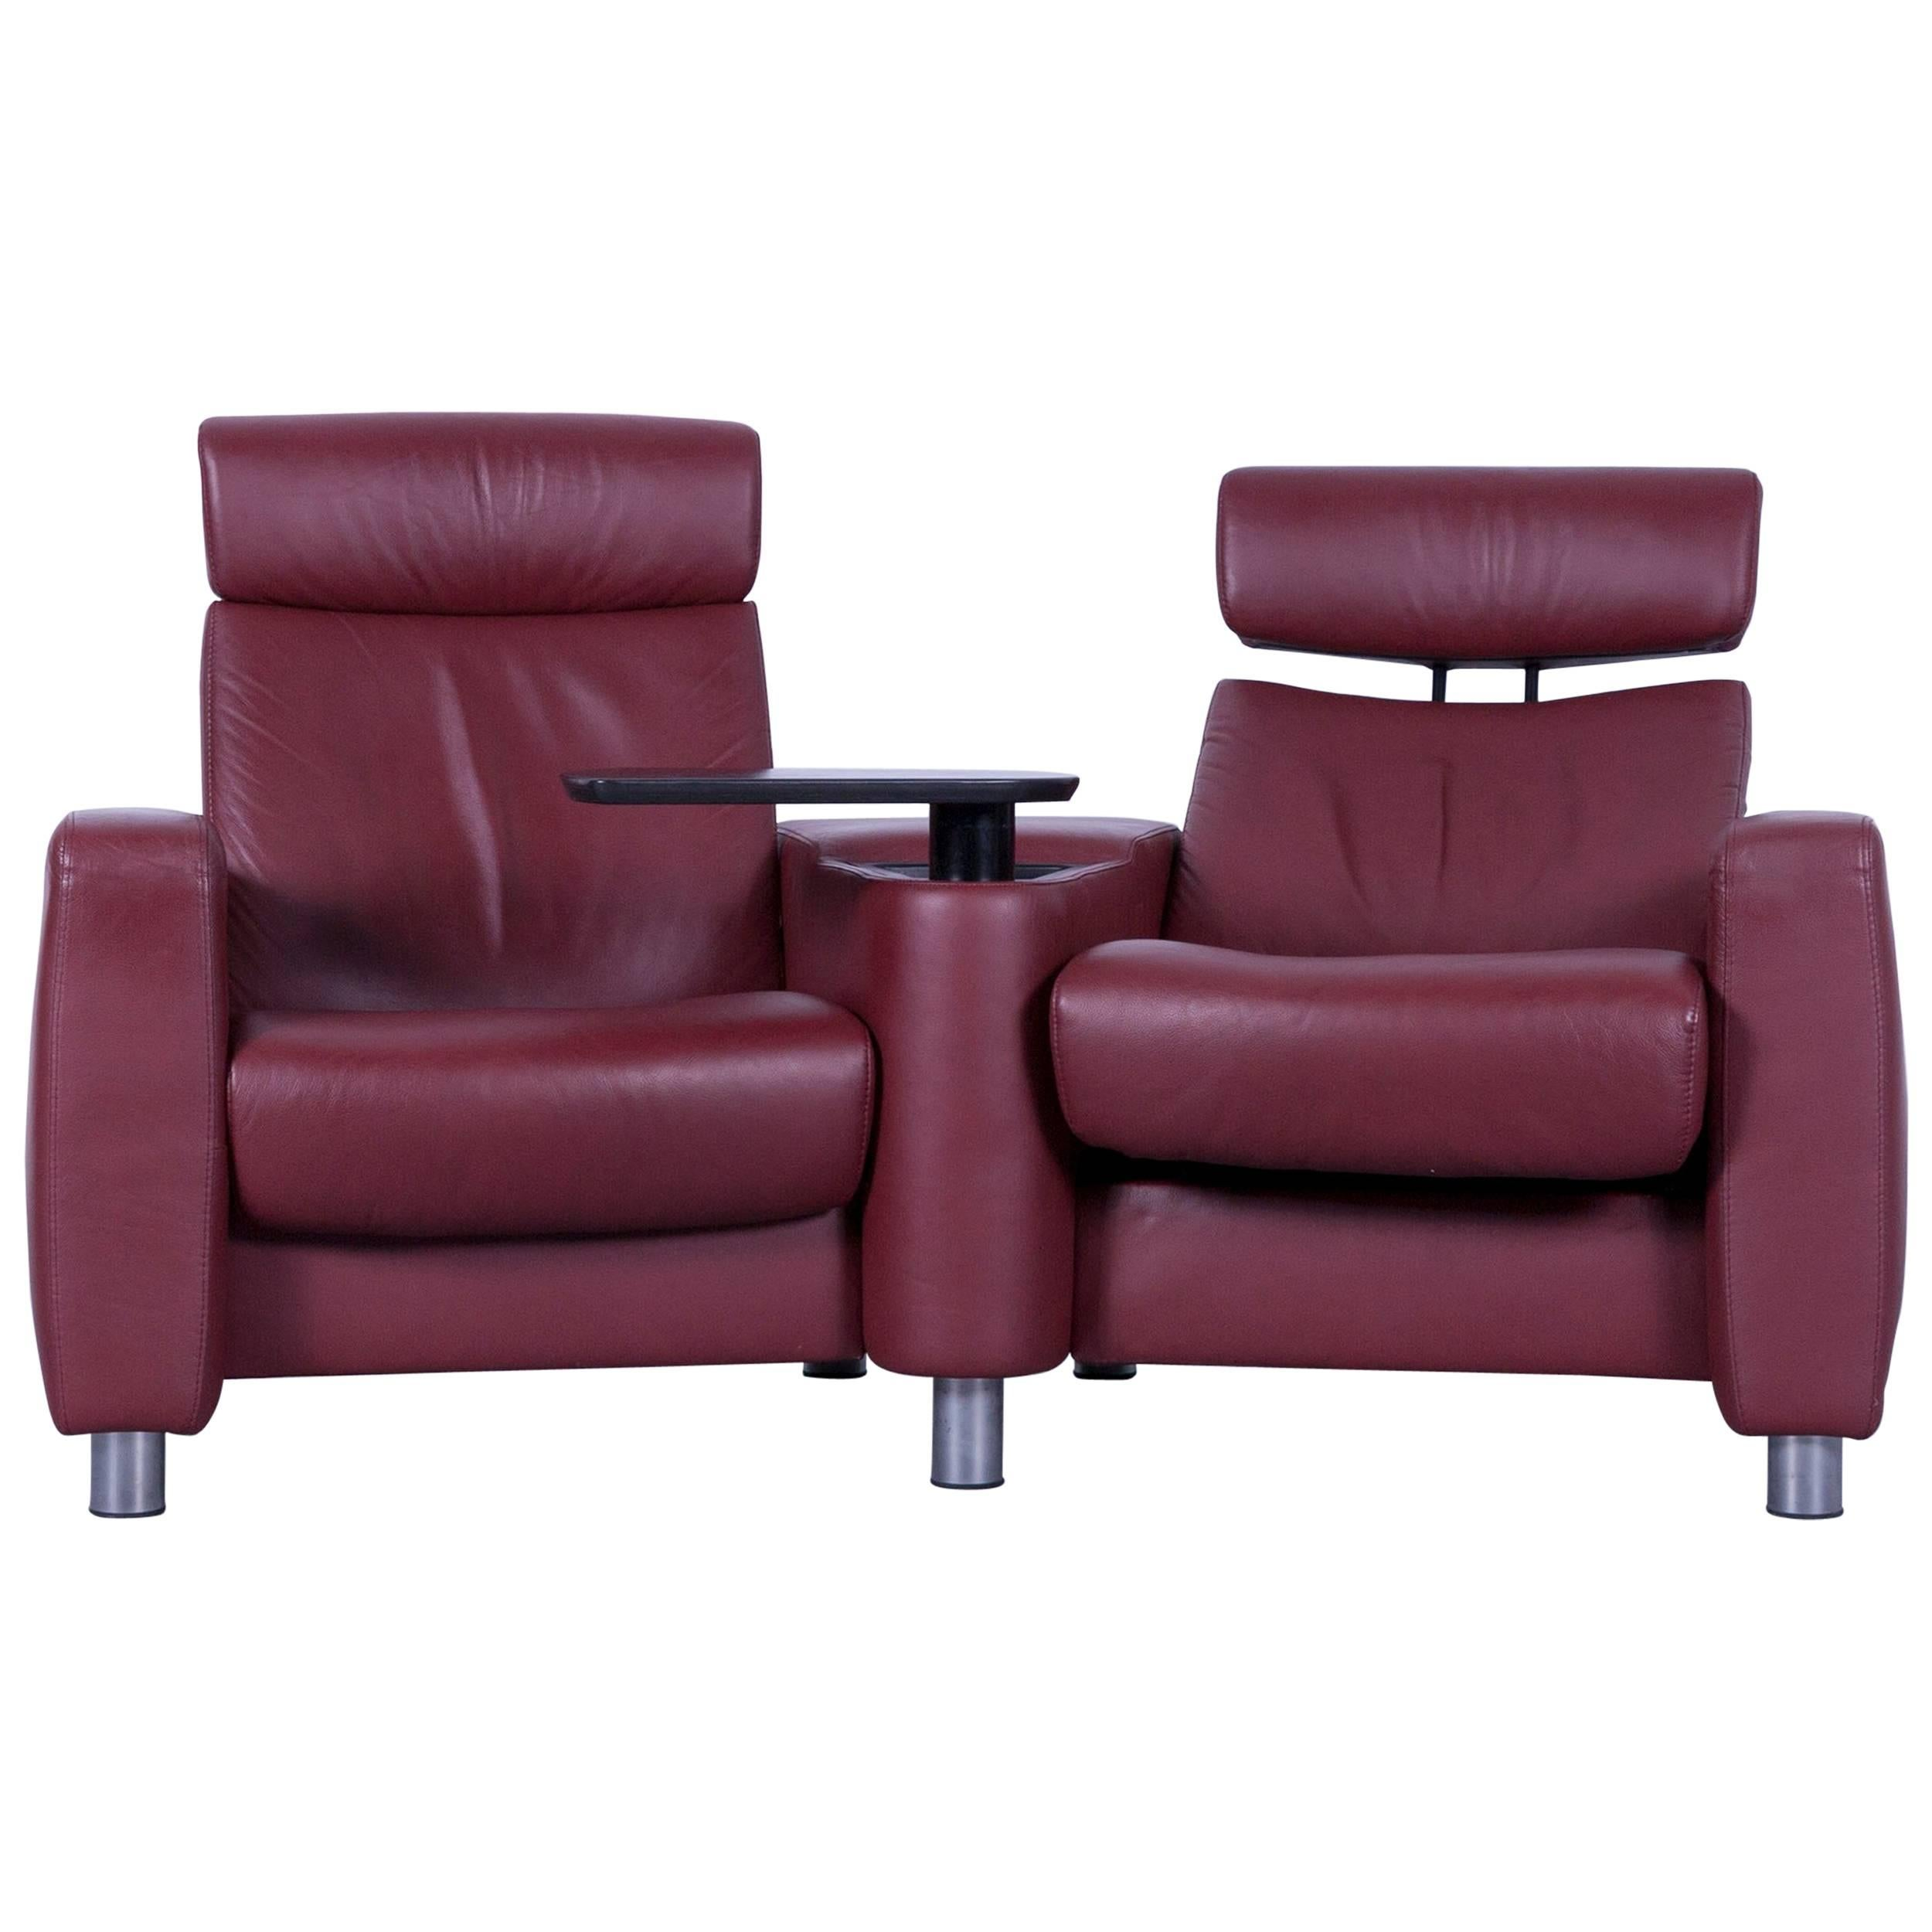 Ekornes Stressless Arion Leather Cinema Sofa Red Recliner For Sale